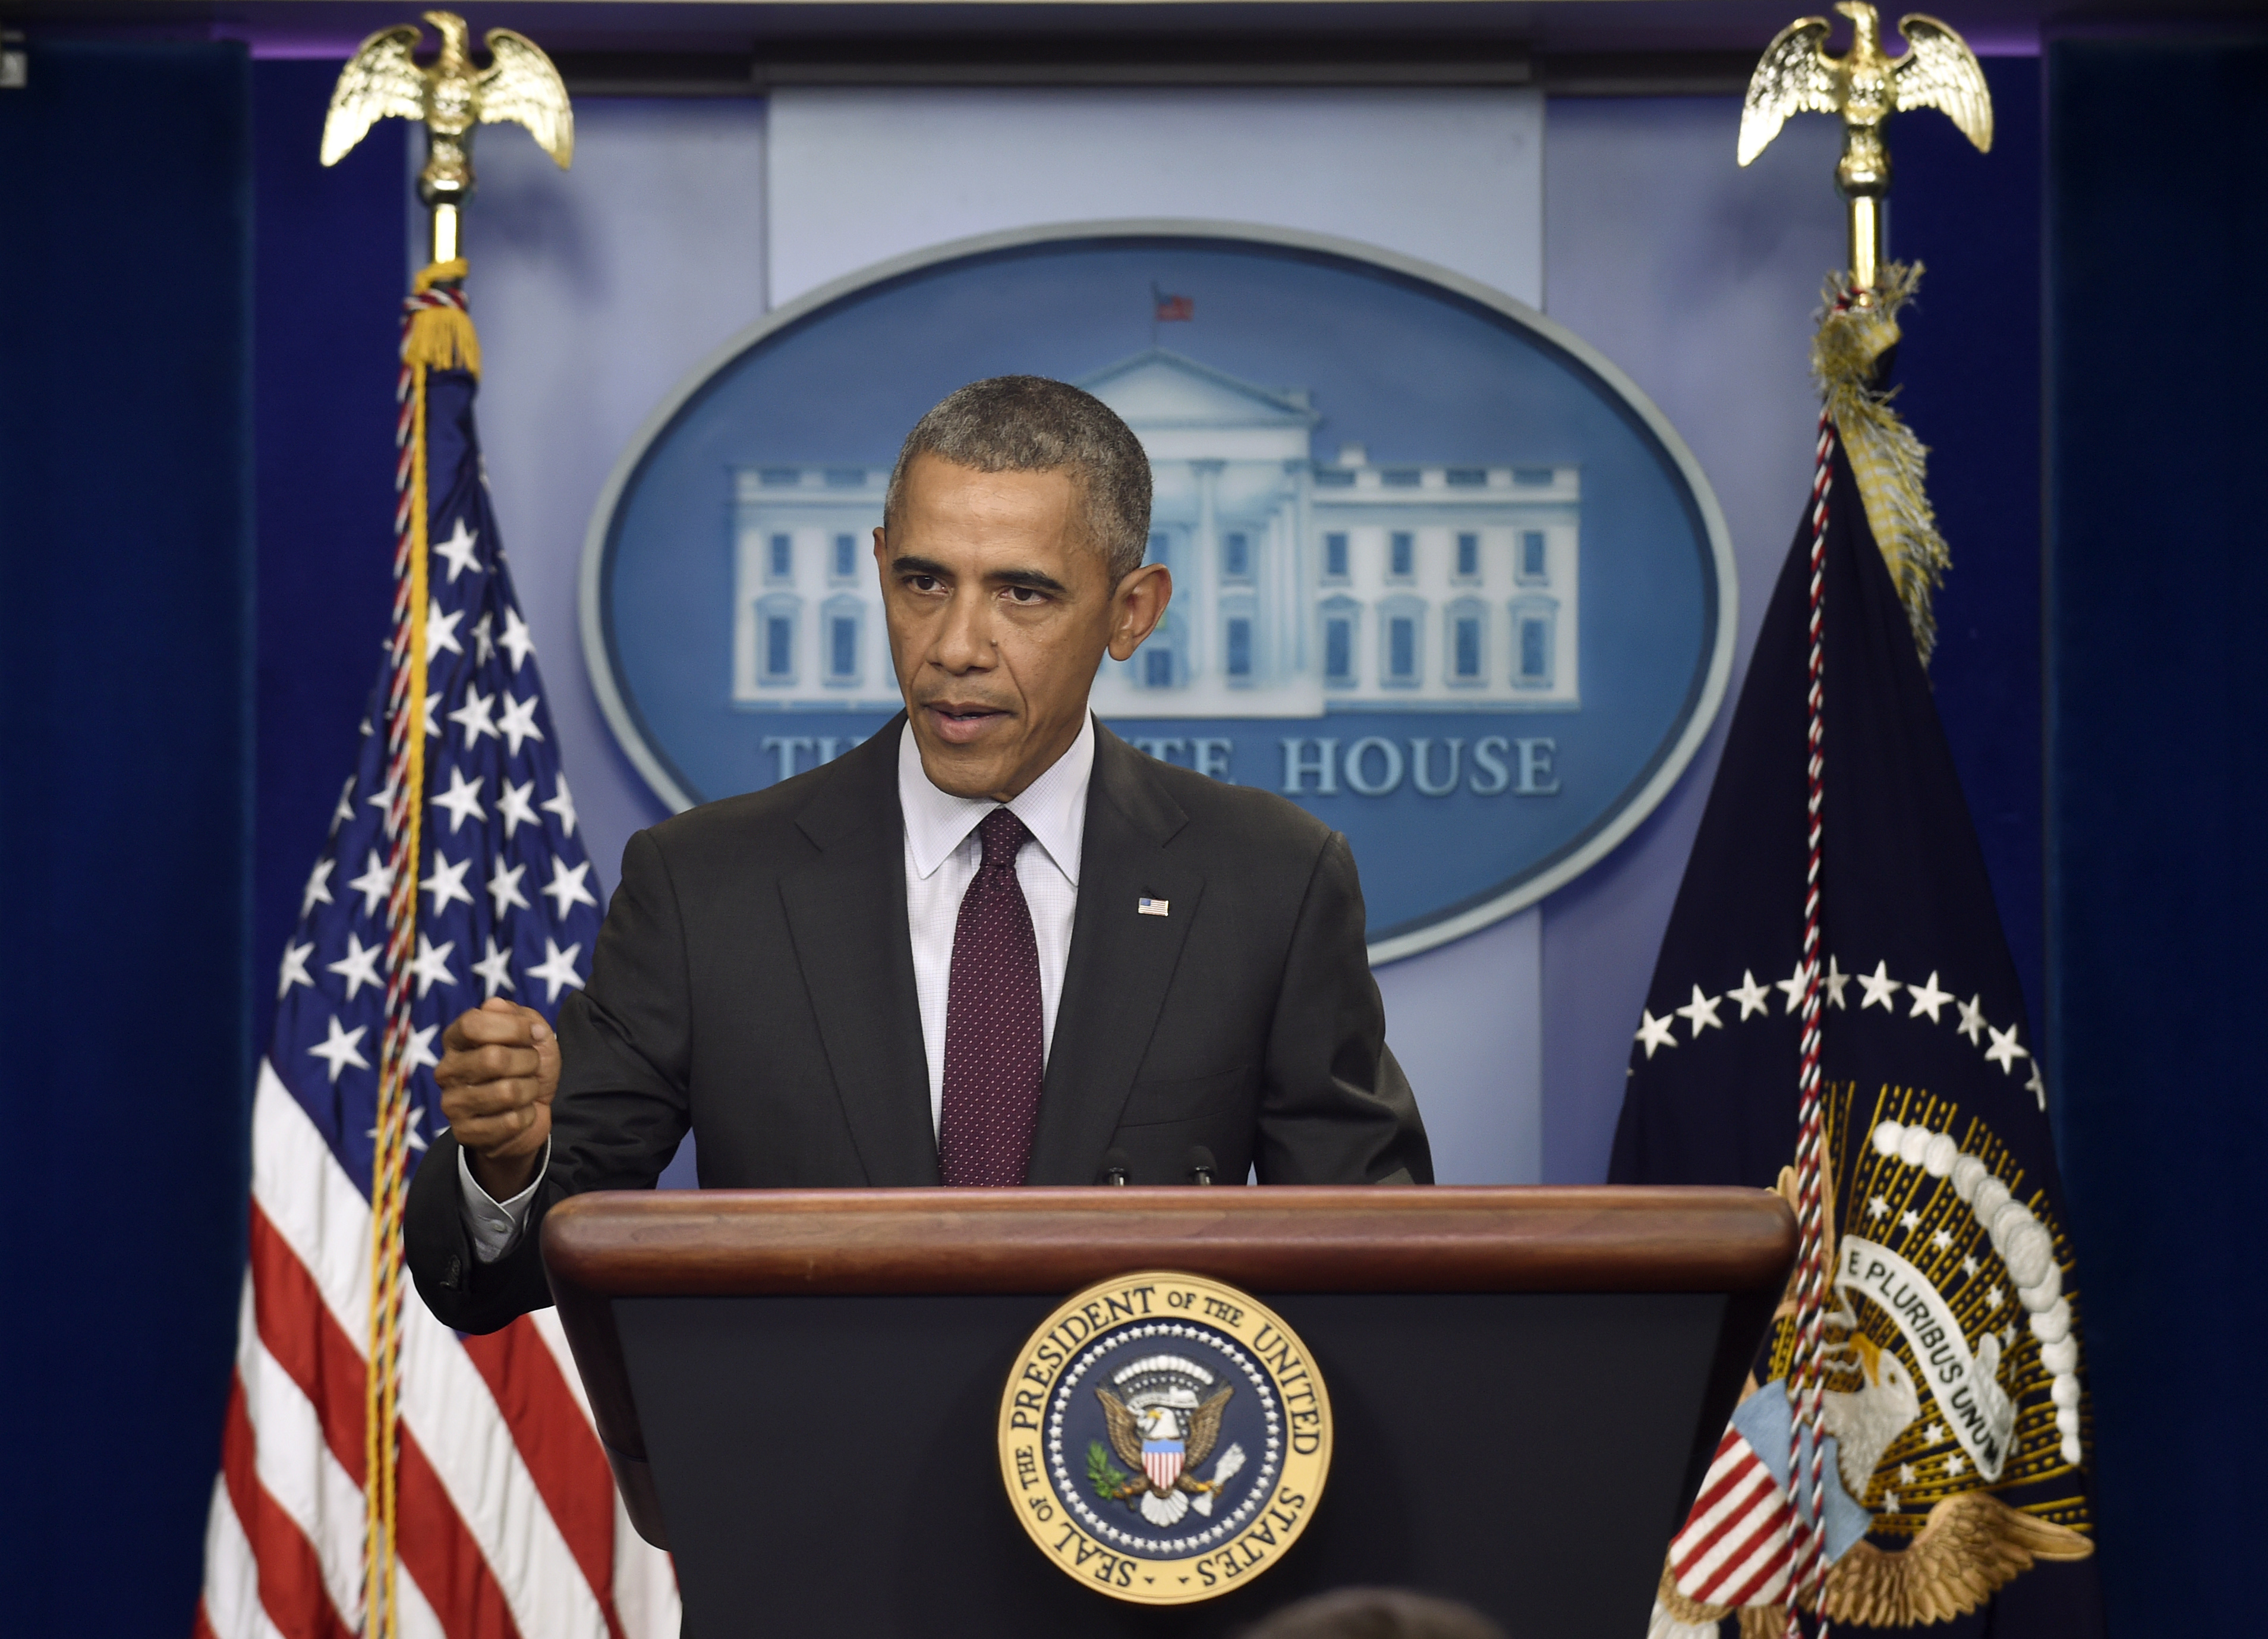 President Barack Obama speaks about the shooting at the community college in Oregon, in the Brady Press Briefing Room at the White House in Washington, Oct. 1, 2015.